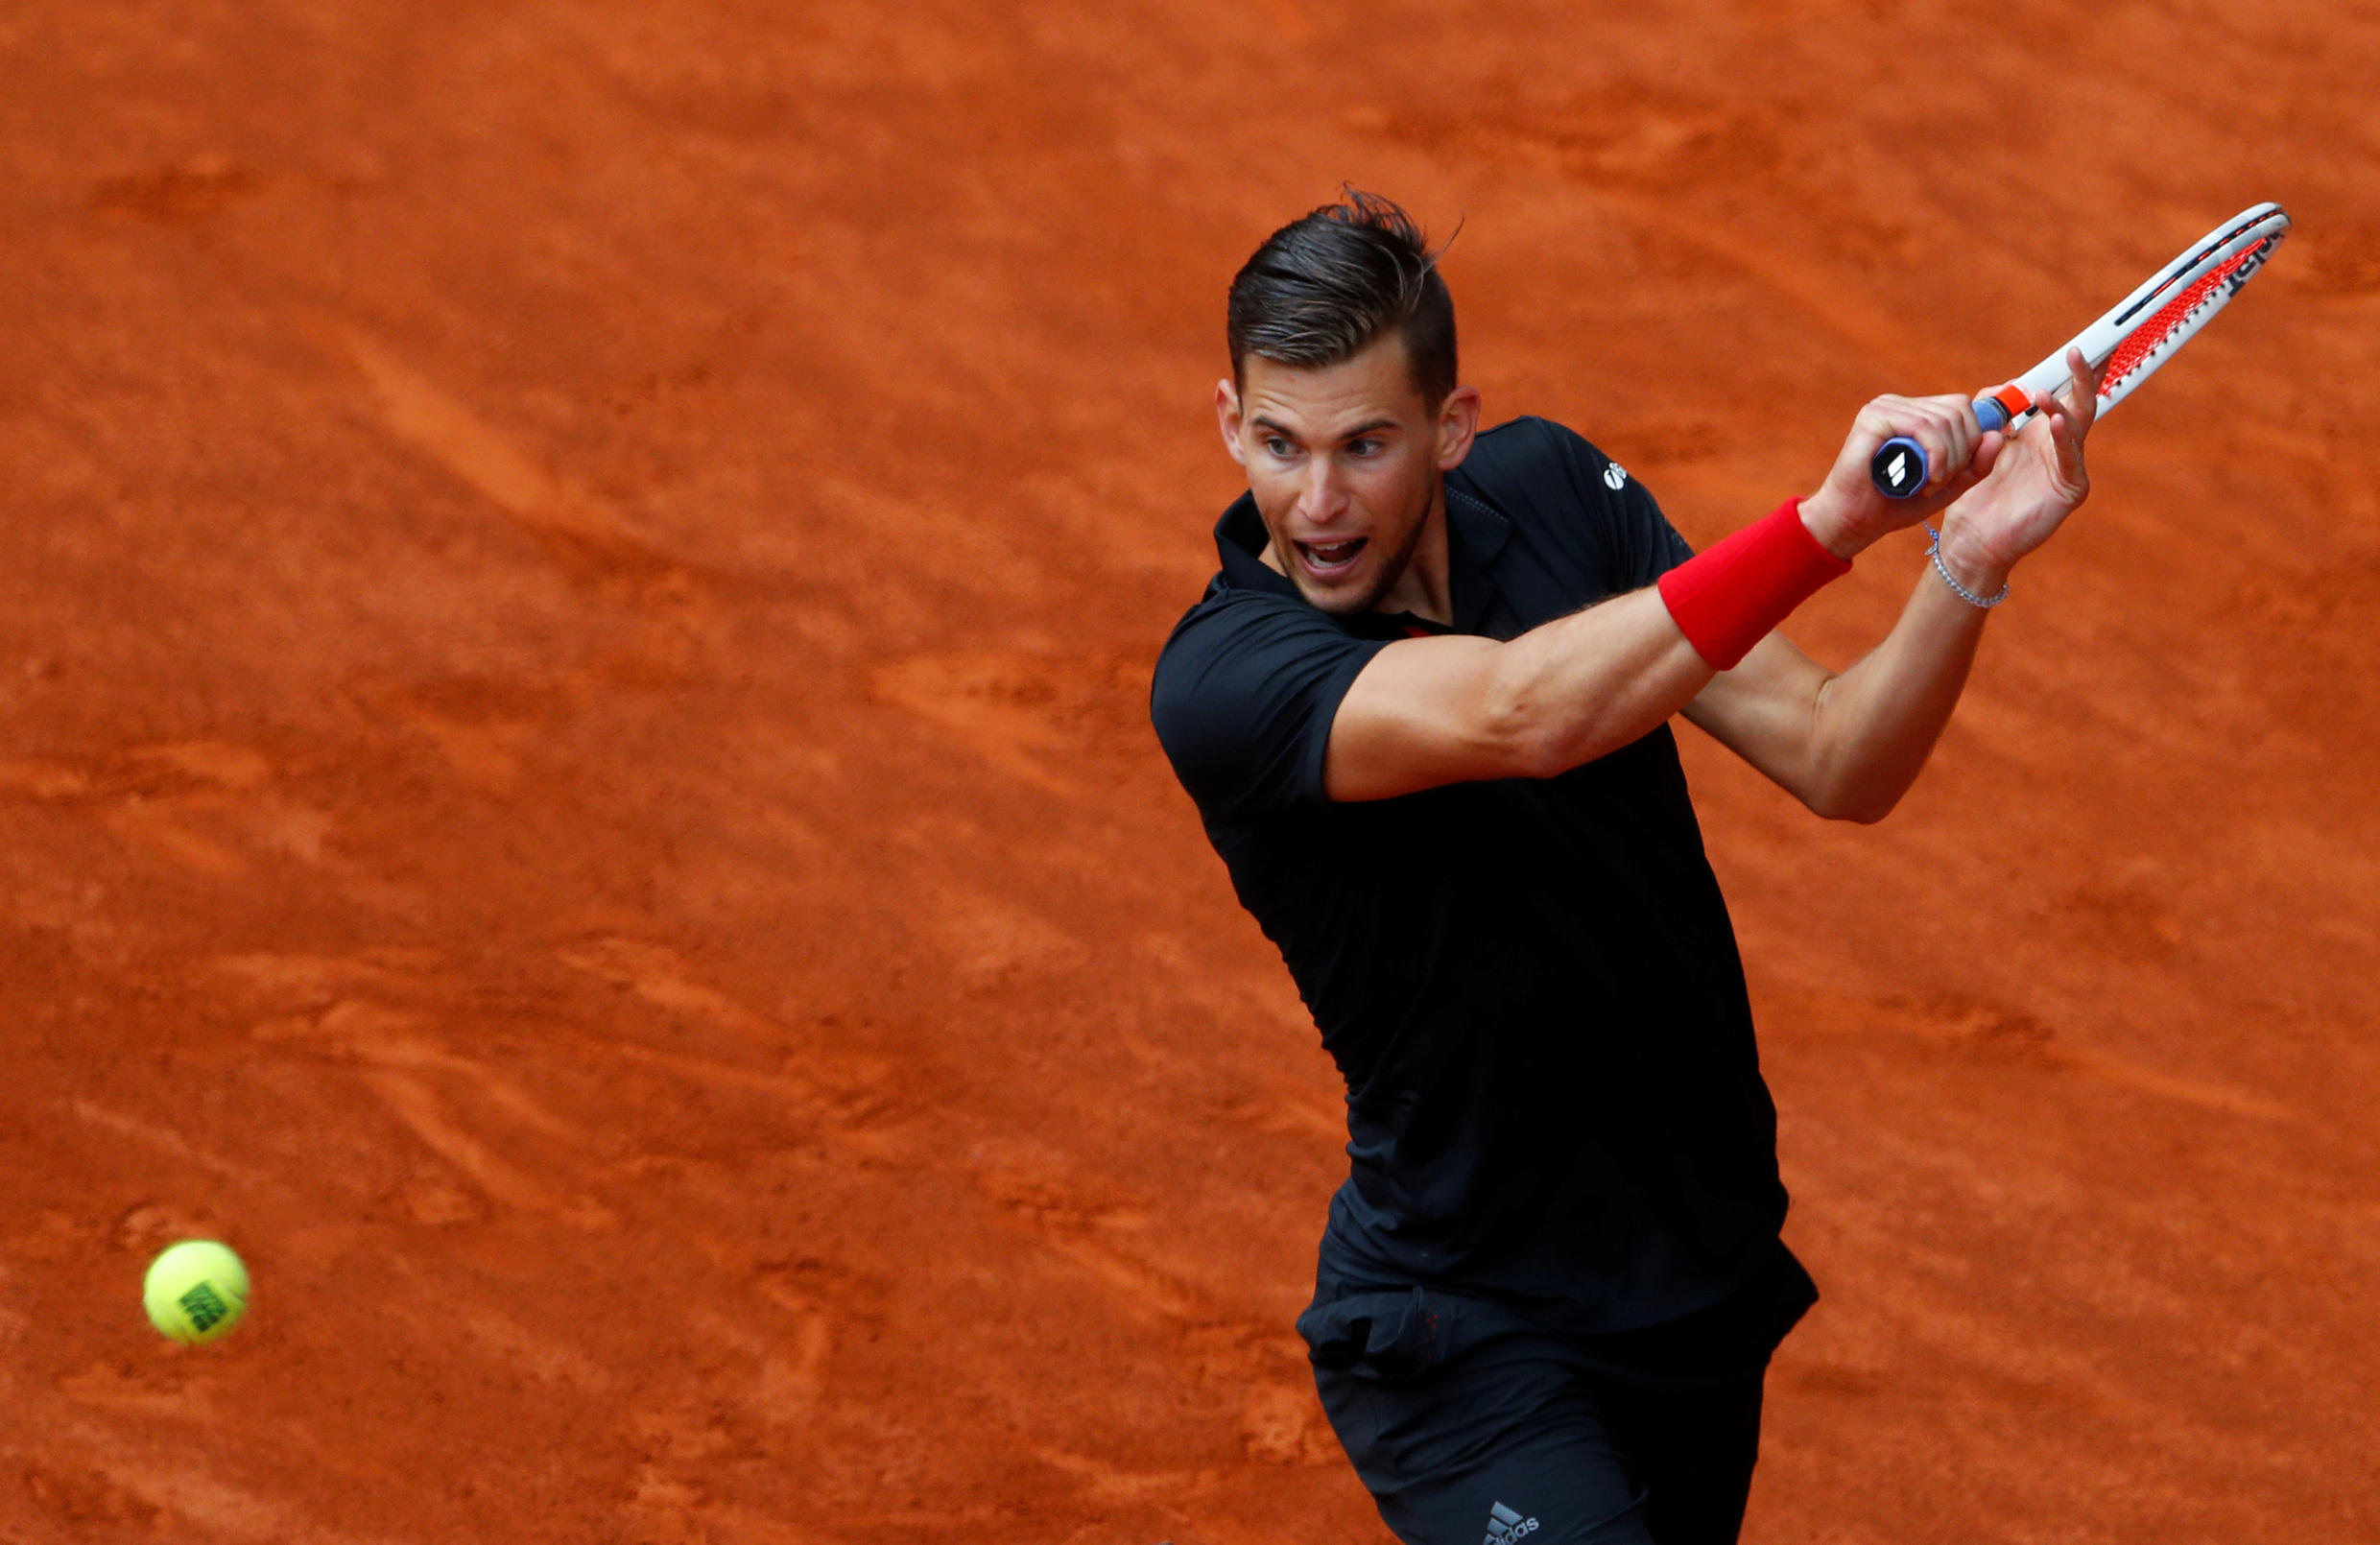 Dominc Thiem followed up his straight sets win over top seed Rafael Nadal with a 6-4 6-2 victory over the sixth seed Kevin Anderson.